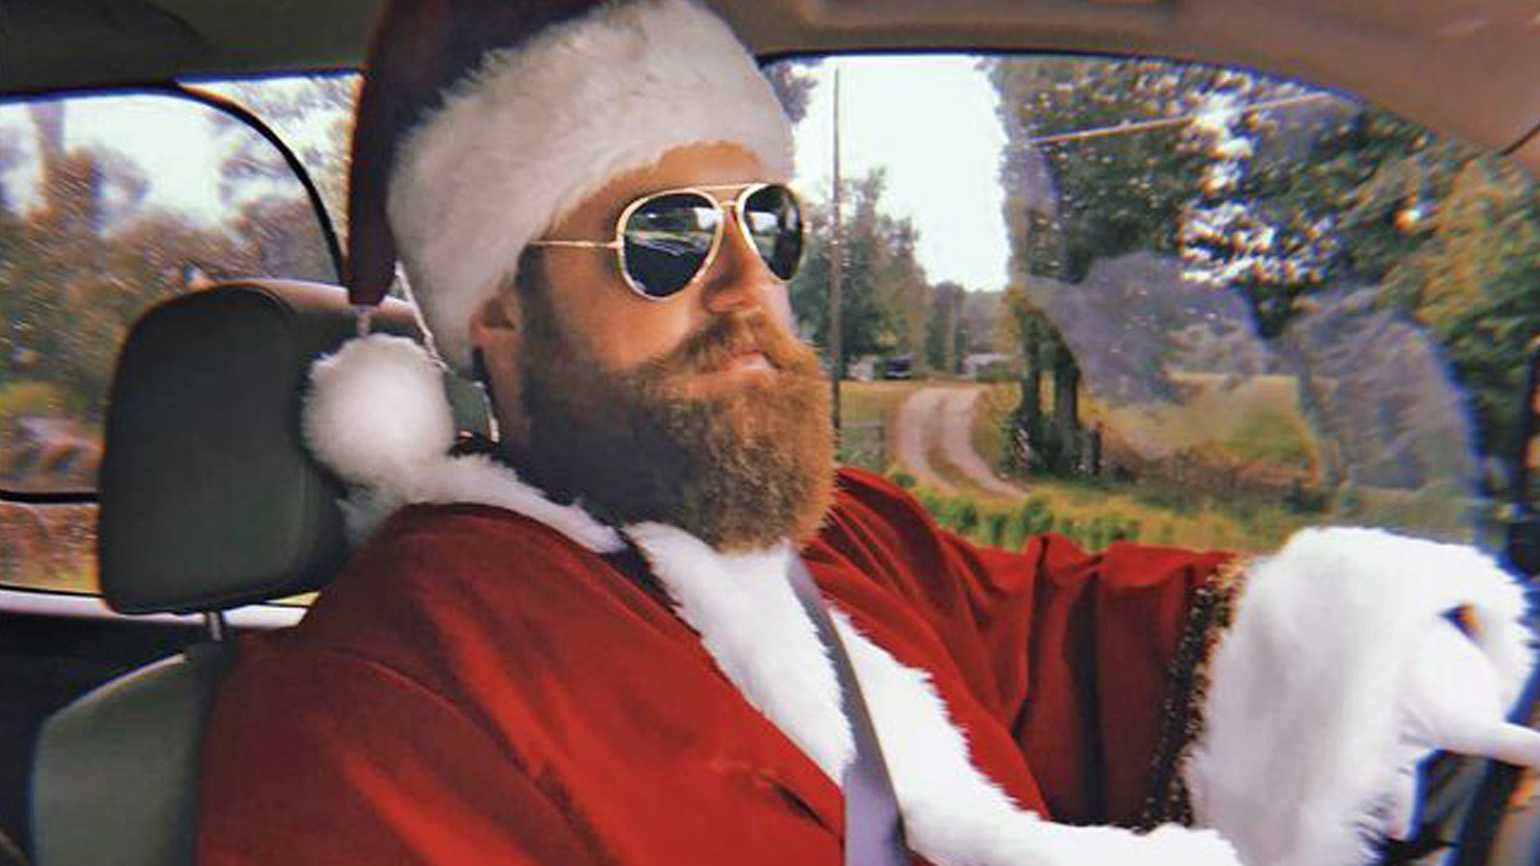 Ben Napier behind the wheel dressed in a Santa suit and sunglasses.